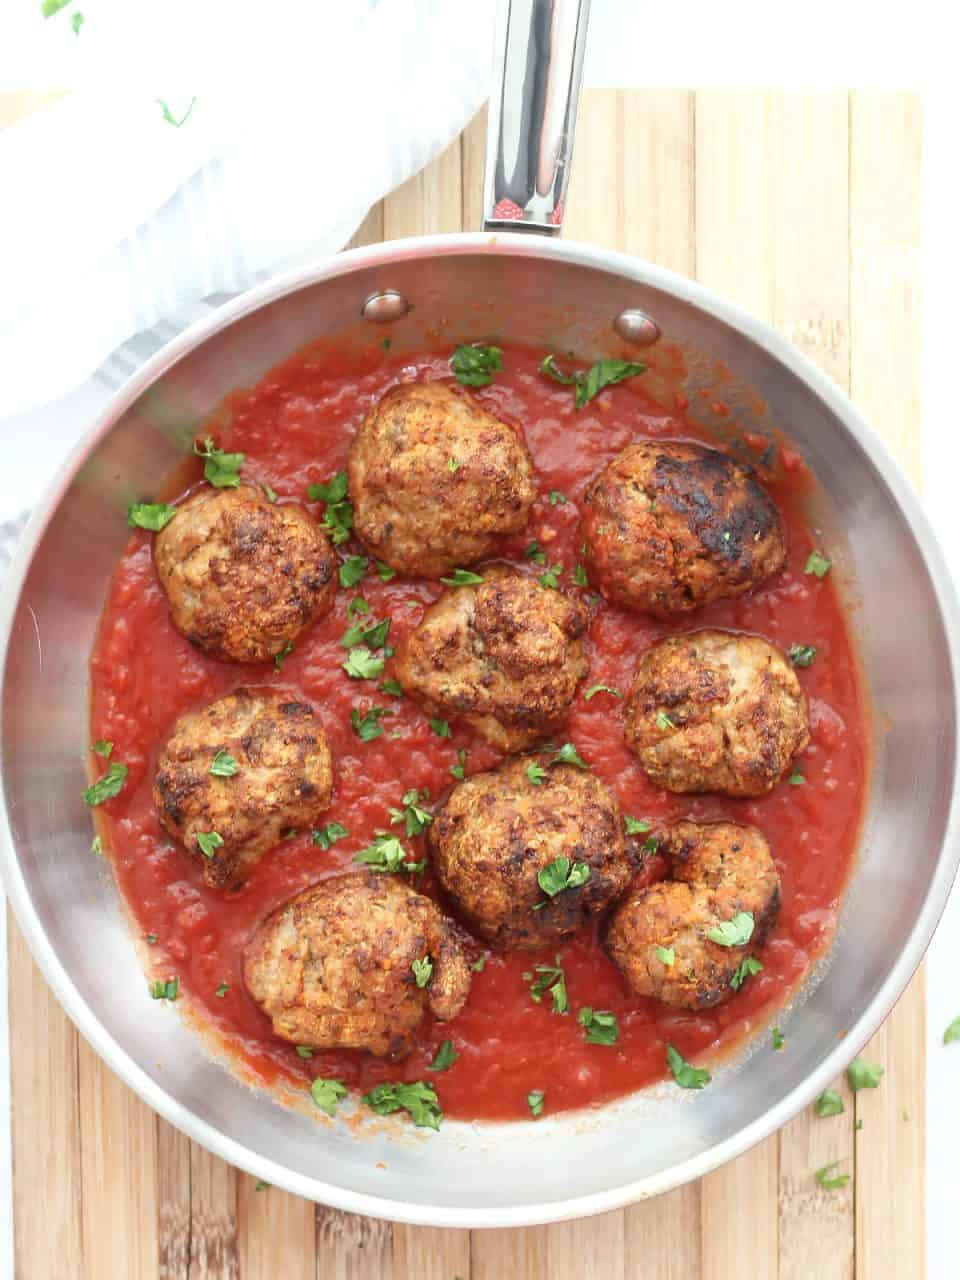 Air fryer turkey meatballs in a skillet with tomato sauce.